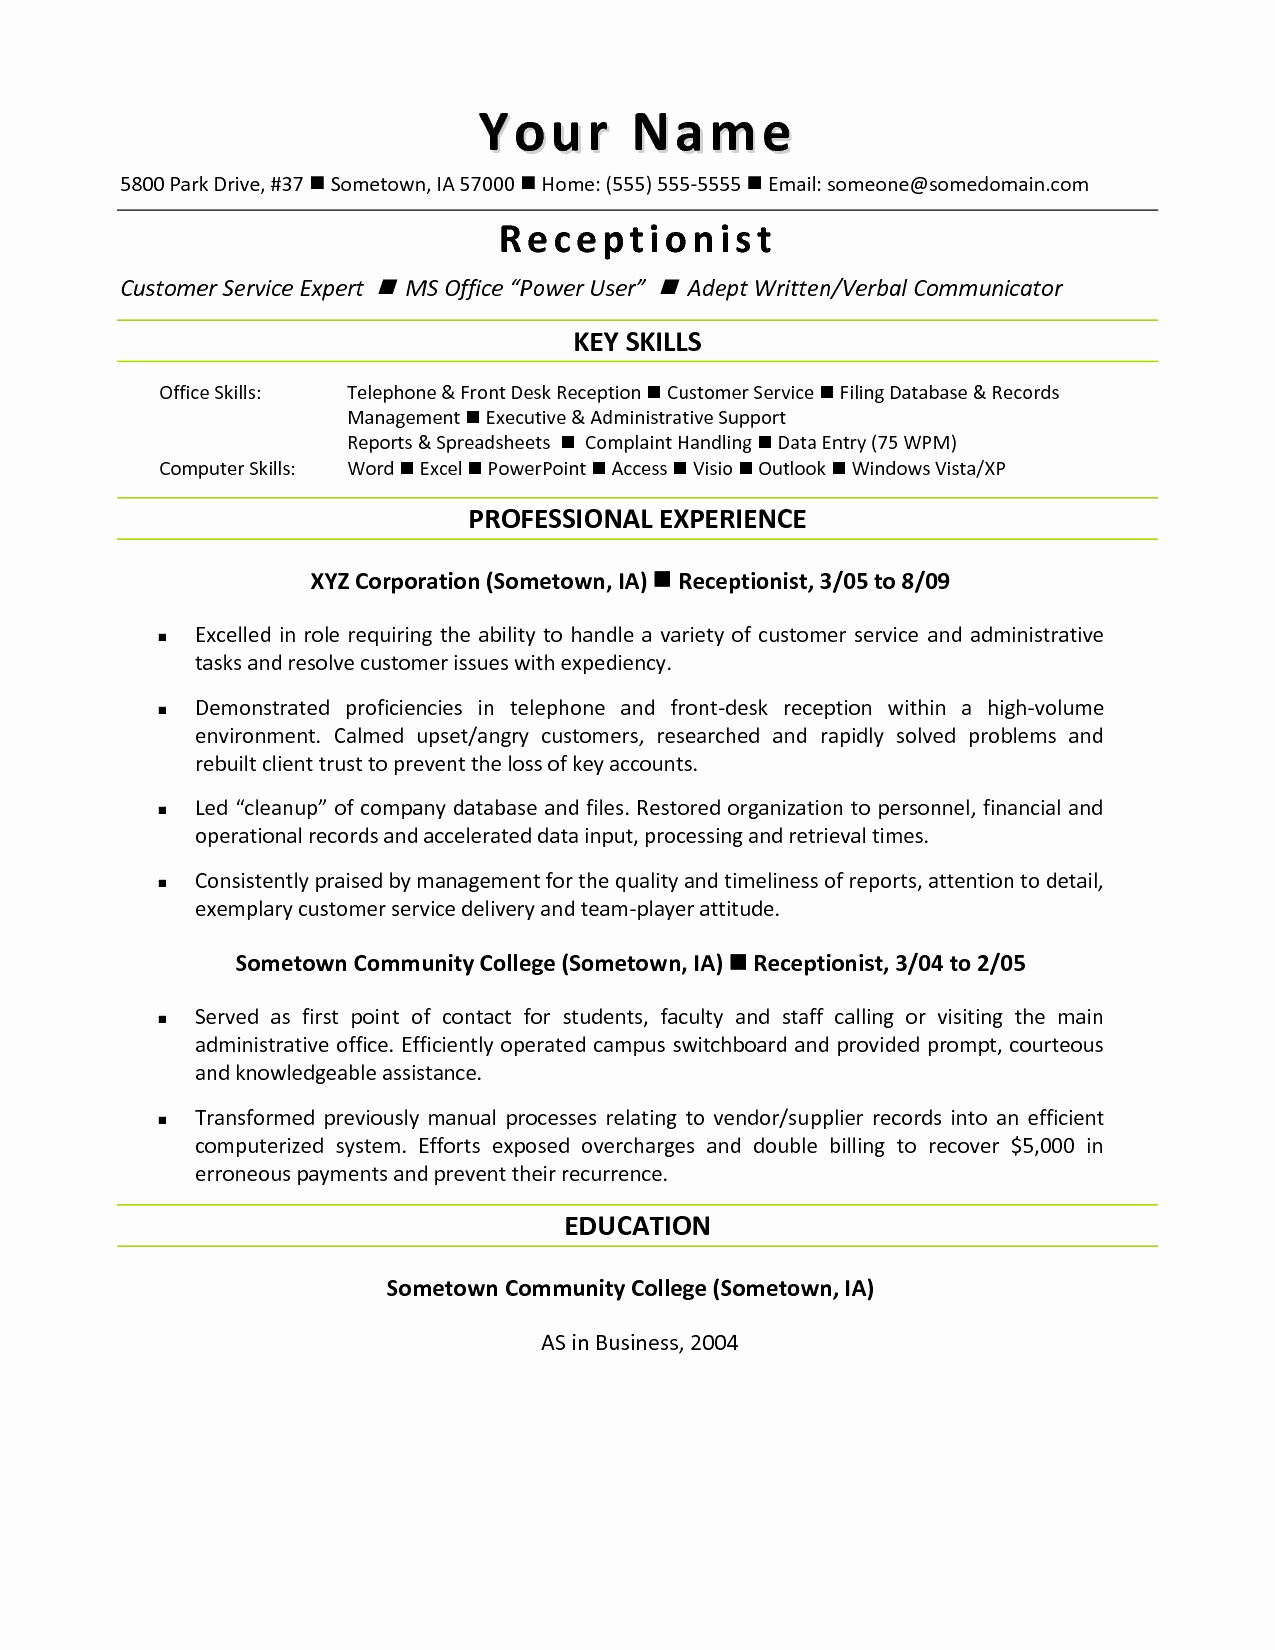 Asset Management Cover Letter Template - Sample Cover Letters to Recruiters New Recruiter Cover Letter Lovely